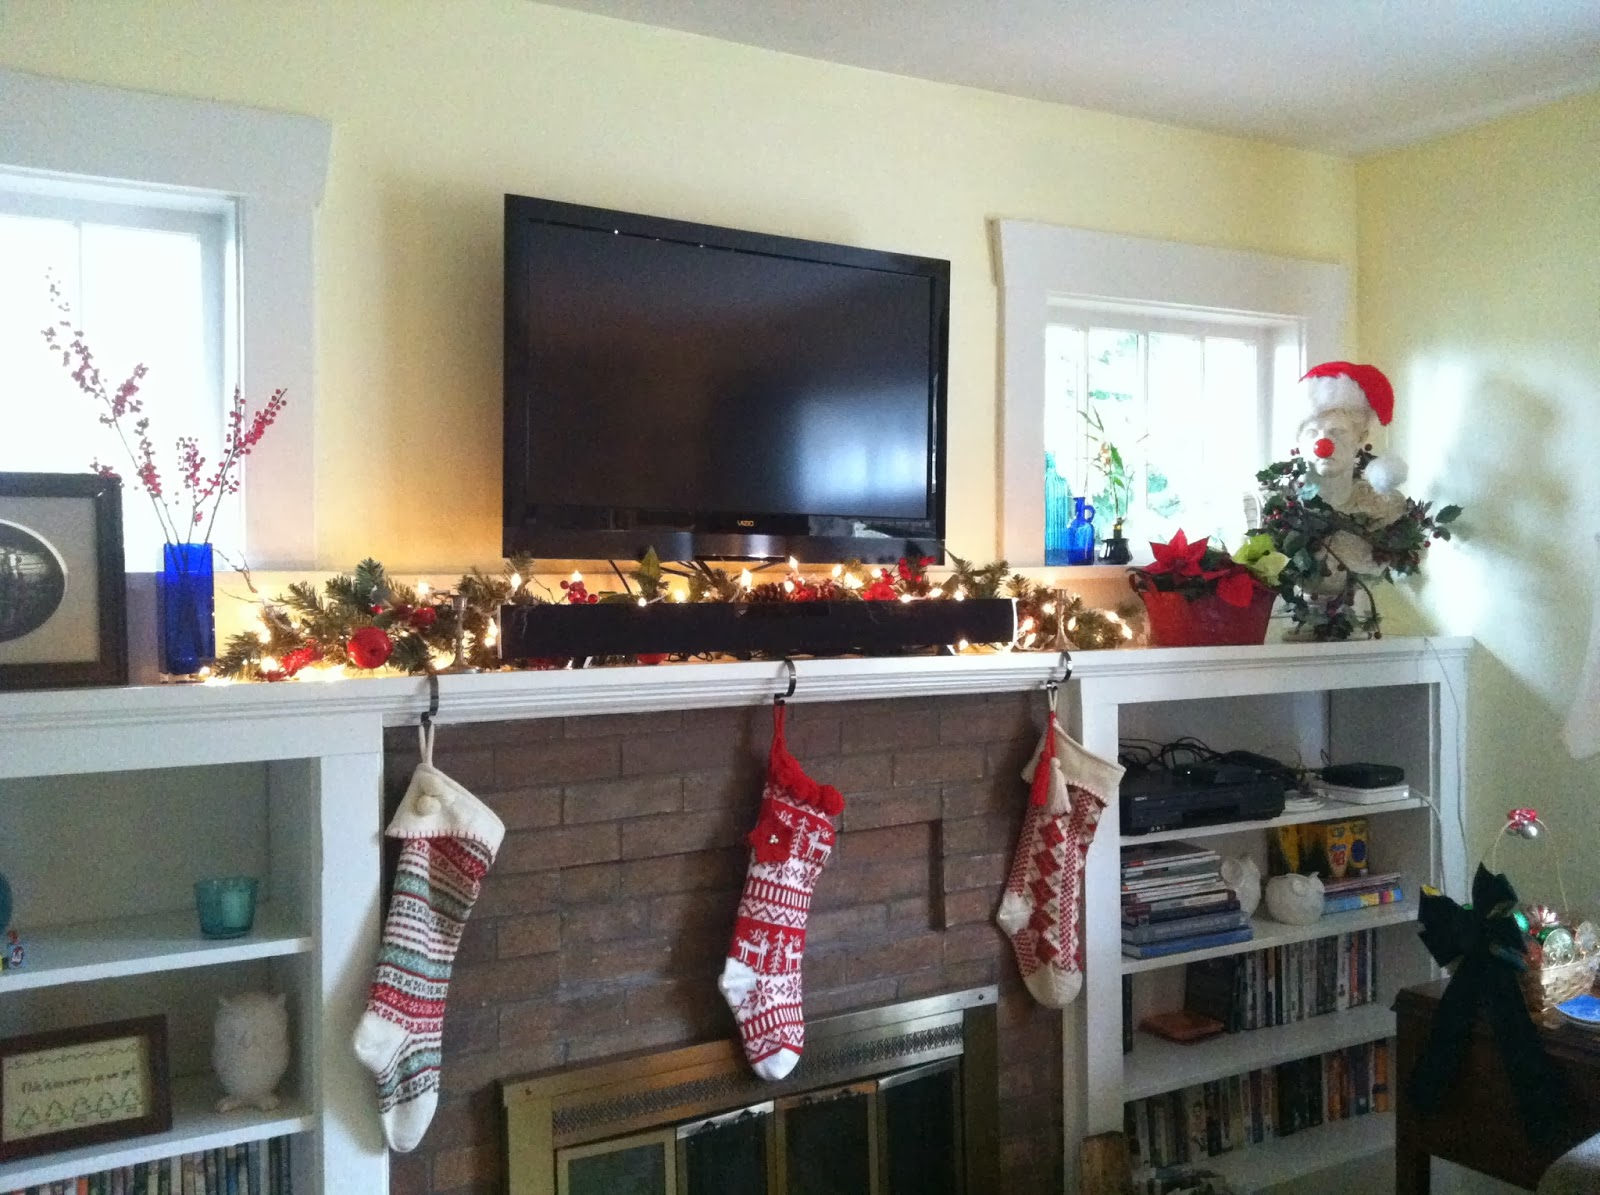 Stockings hung by the chimney with care